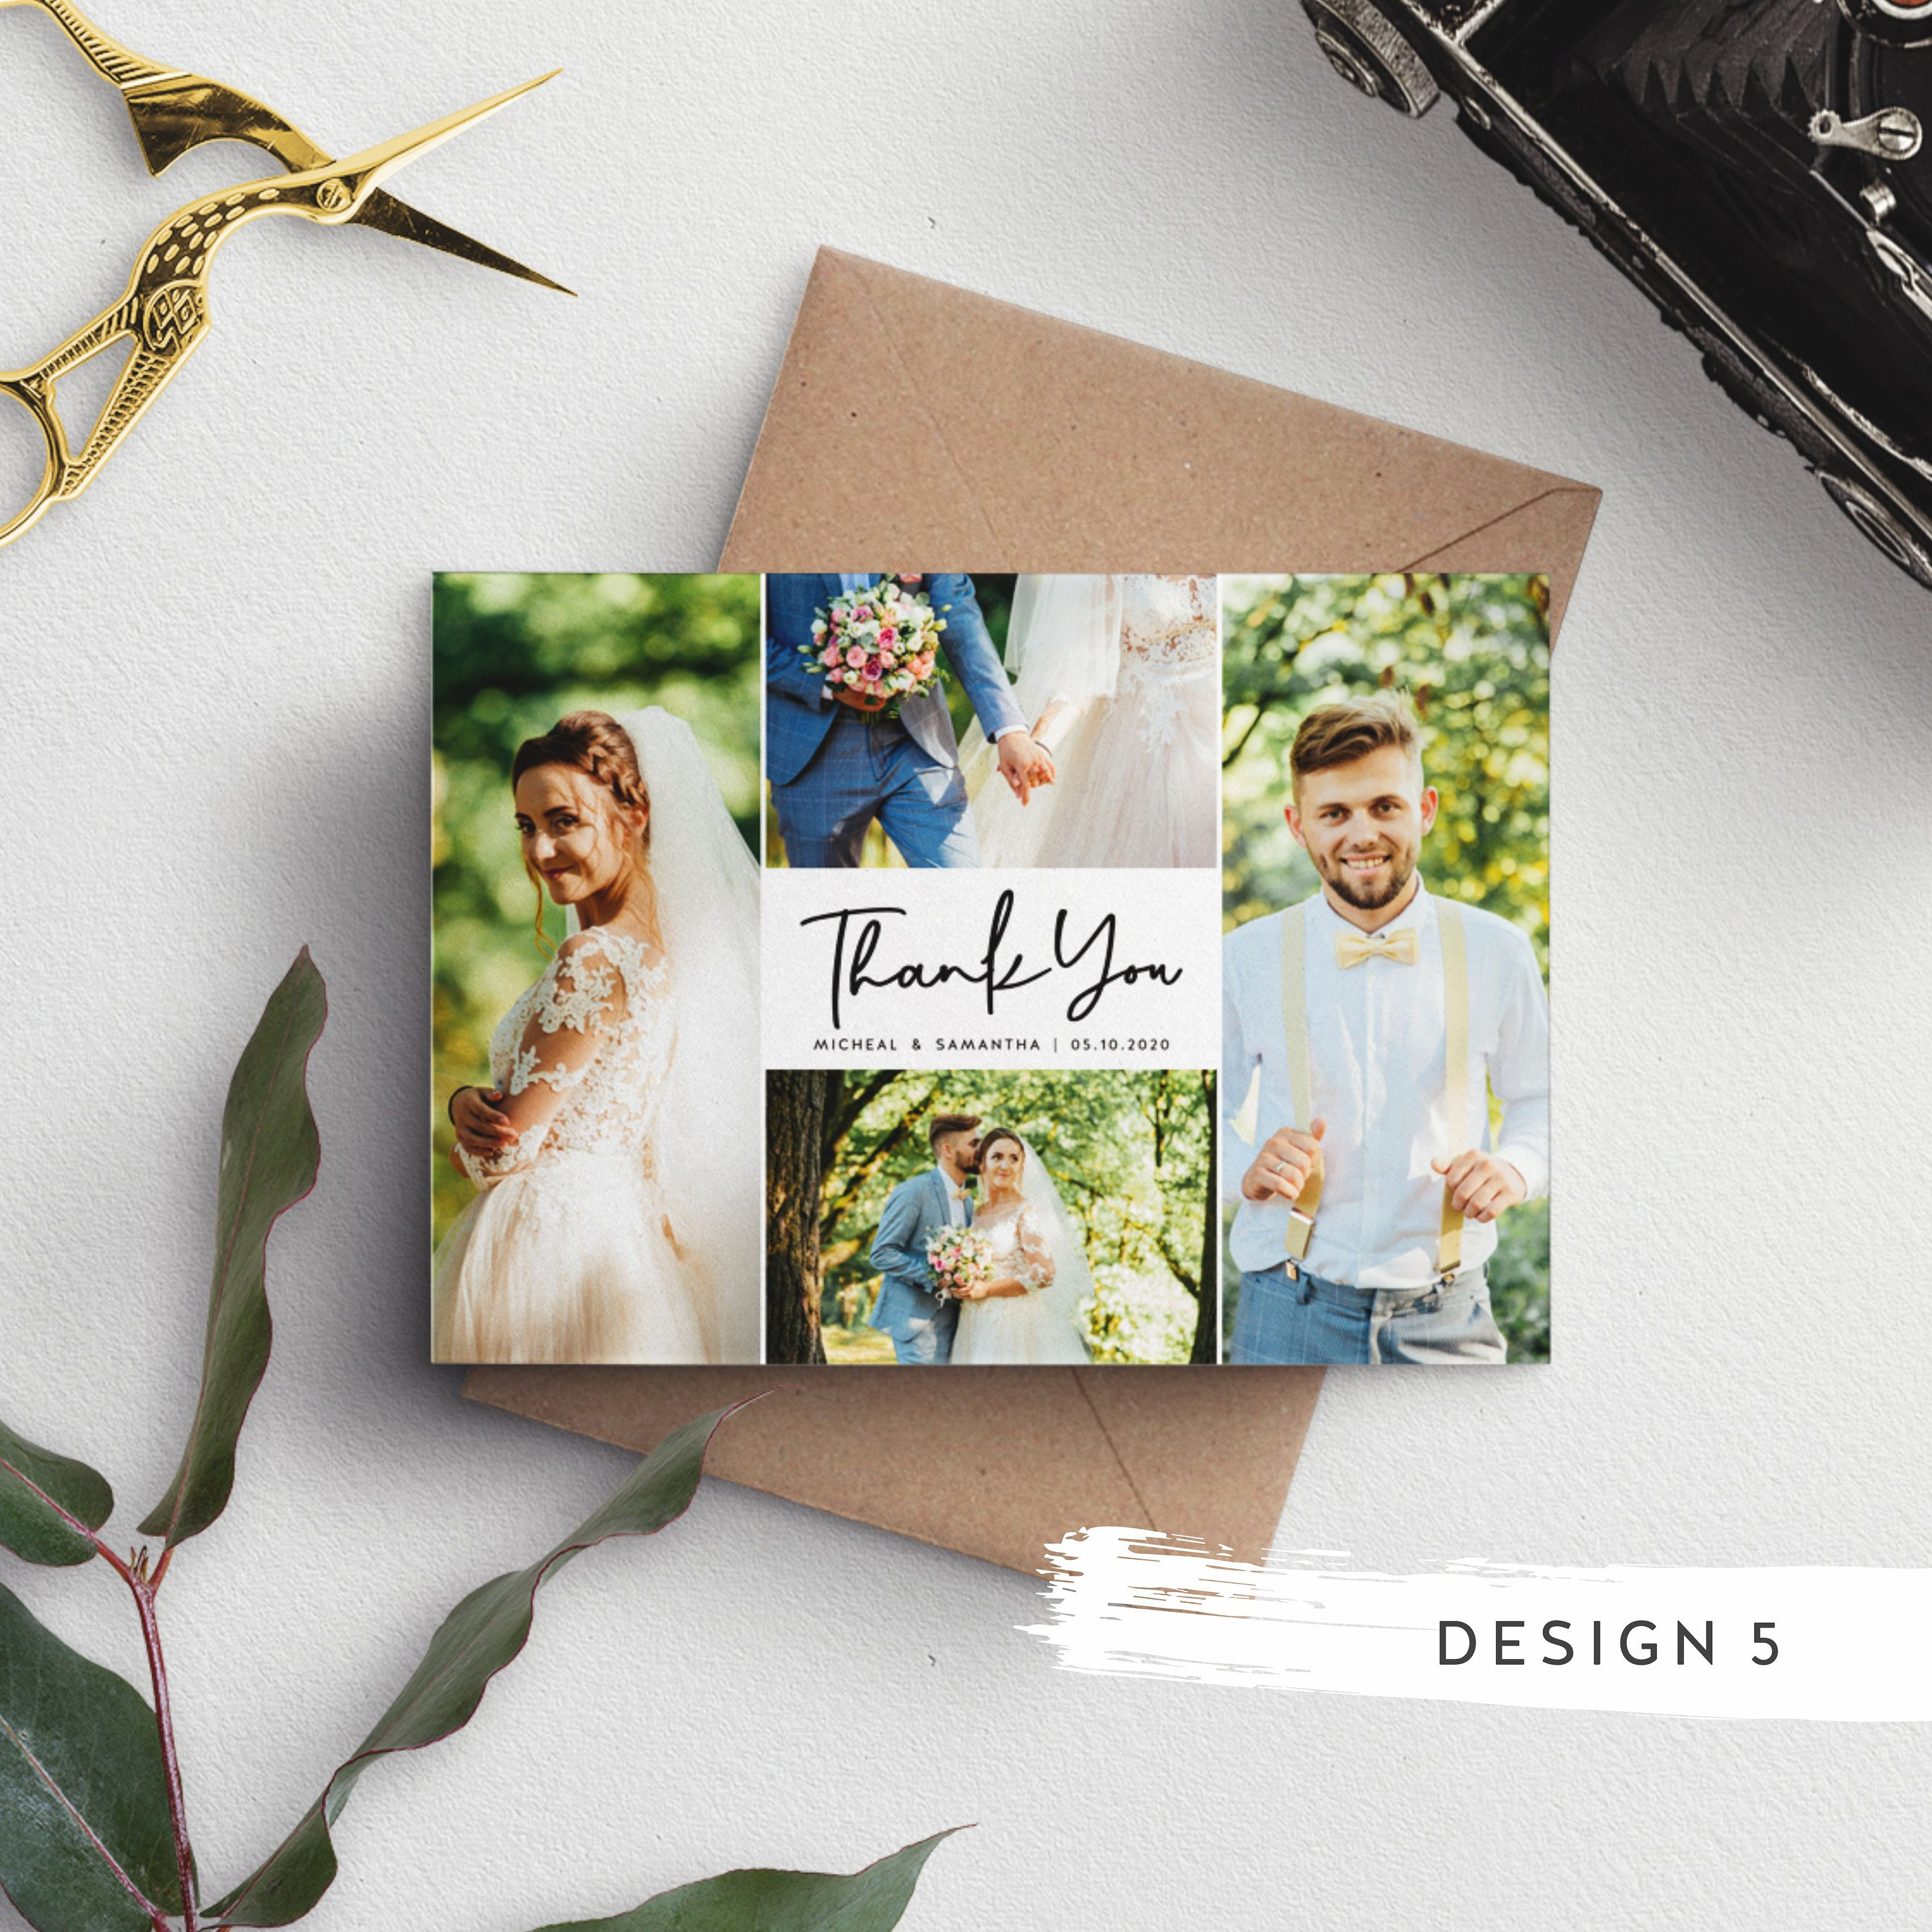 Wedding Thank You Card With Photo Thank You Wedding Cards Etsy In 2020 Photo Thank You Cards Wedding Thank You Cards Personalized Thank You Cards